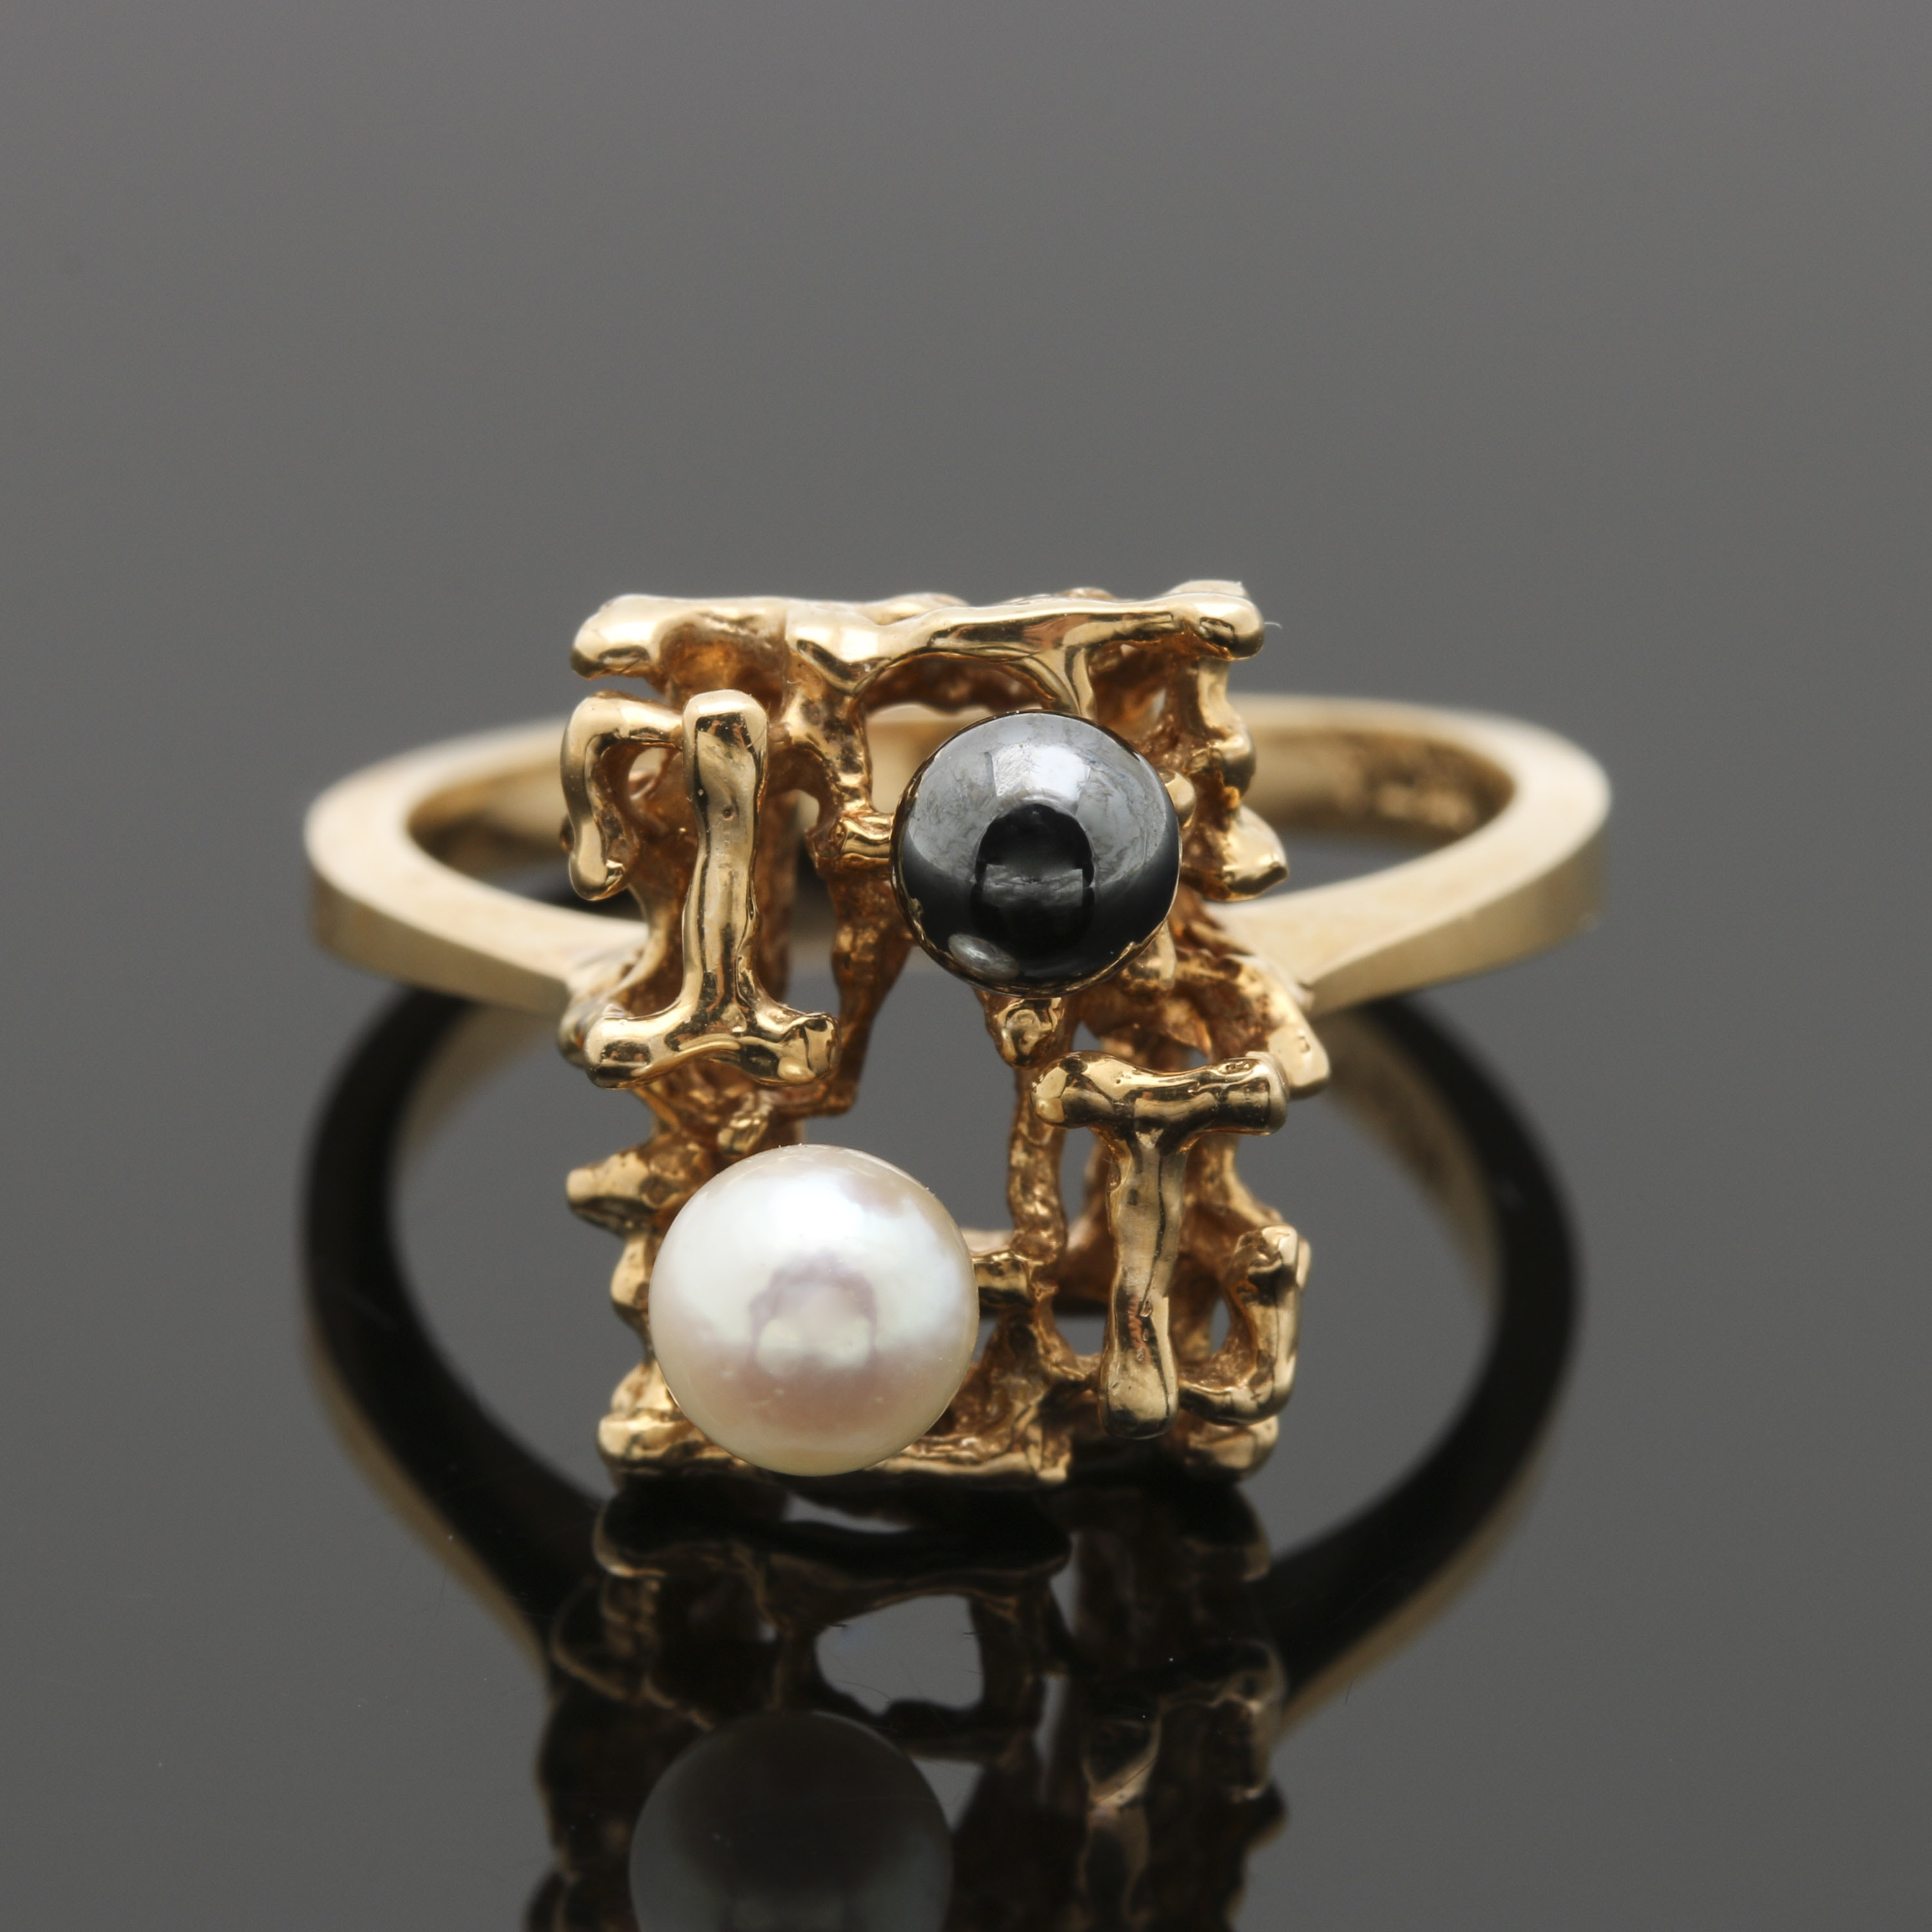 Circa 1960's-1970's 14K Yellow Gold Cultured Pearl Ring